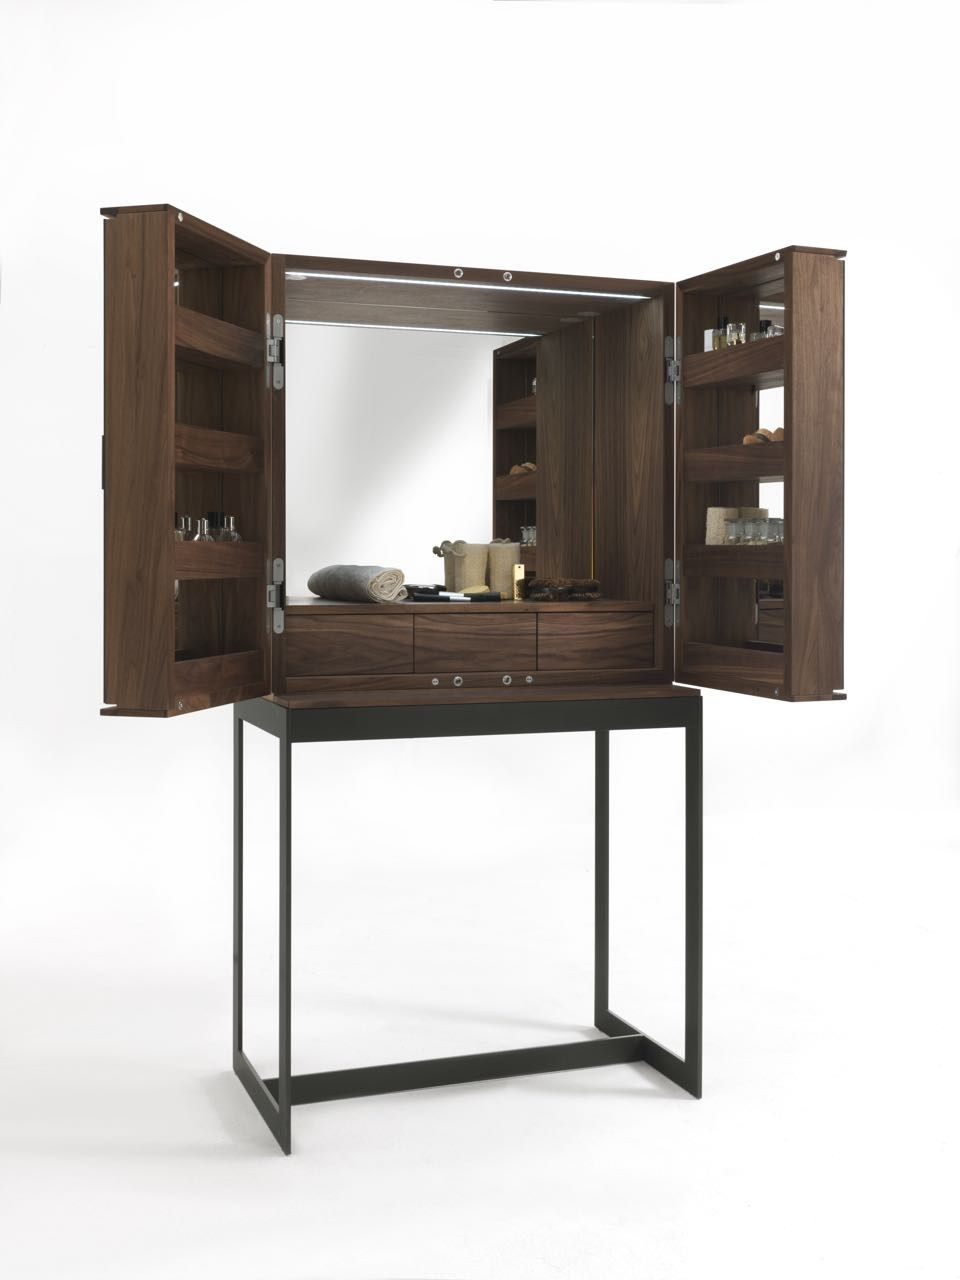 Dressing tables with mirrors reflect the beauty of the d cor for Beauty parlour dressing table images